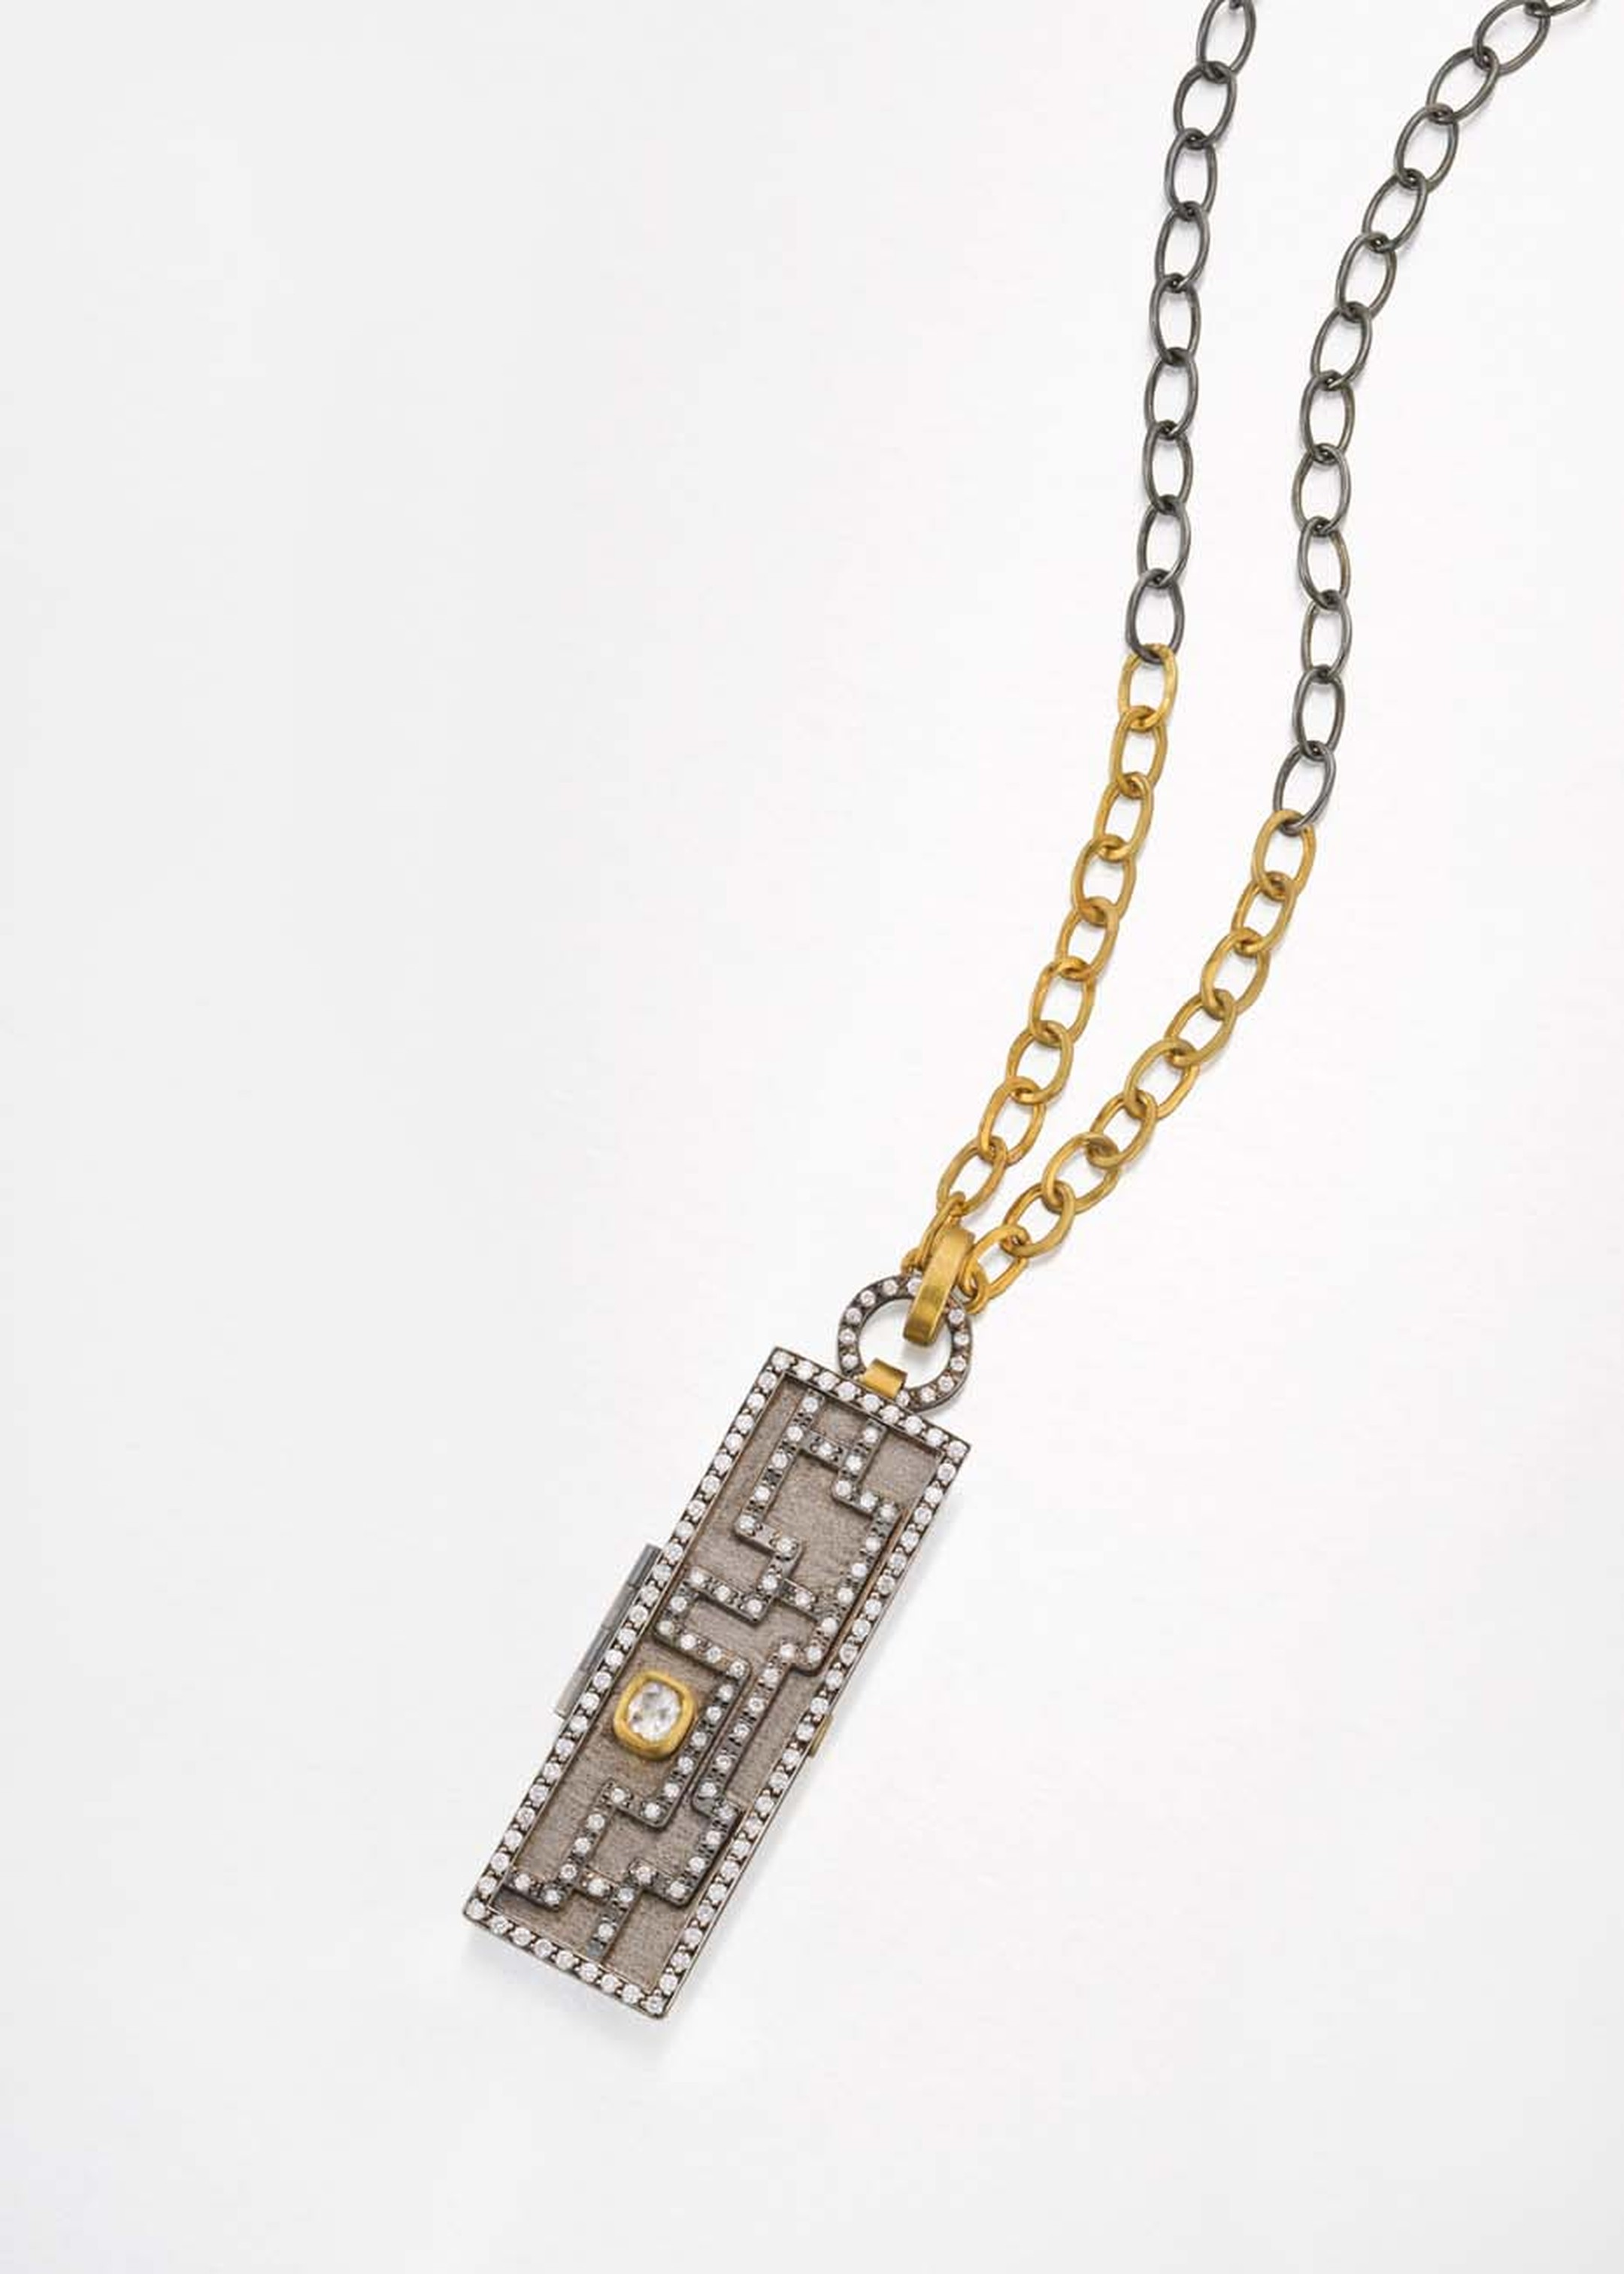 Annie Fensterstock blackened silver, white and yellow gold Maze locket with diamonds.